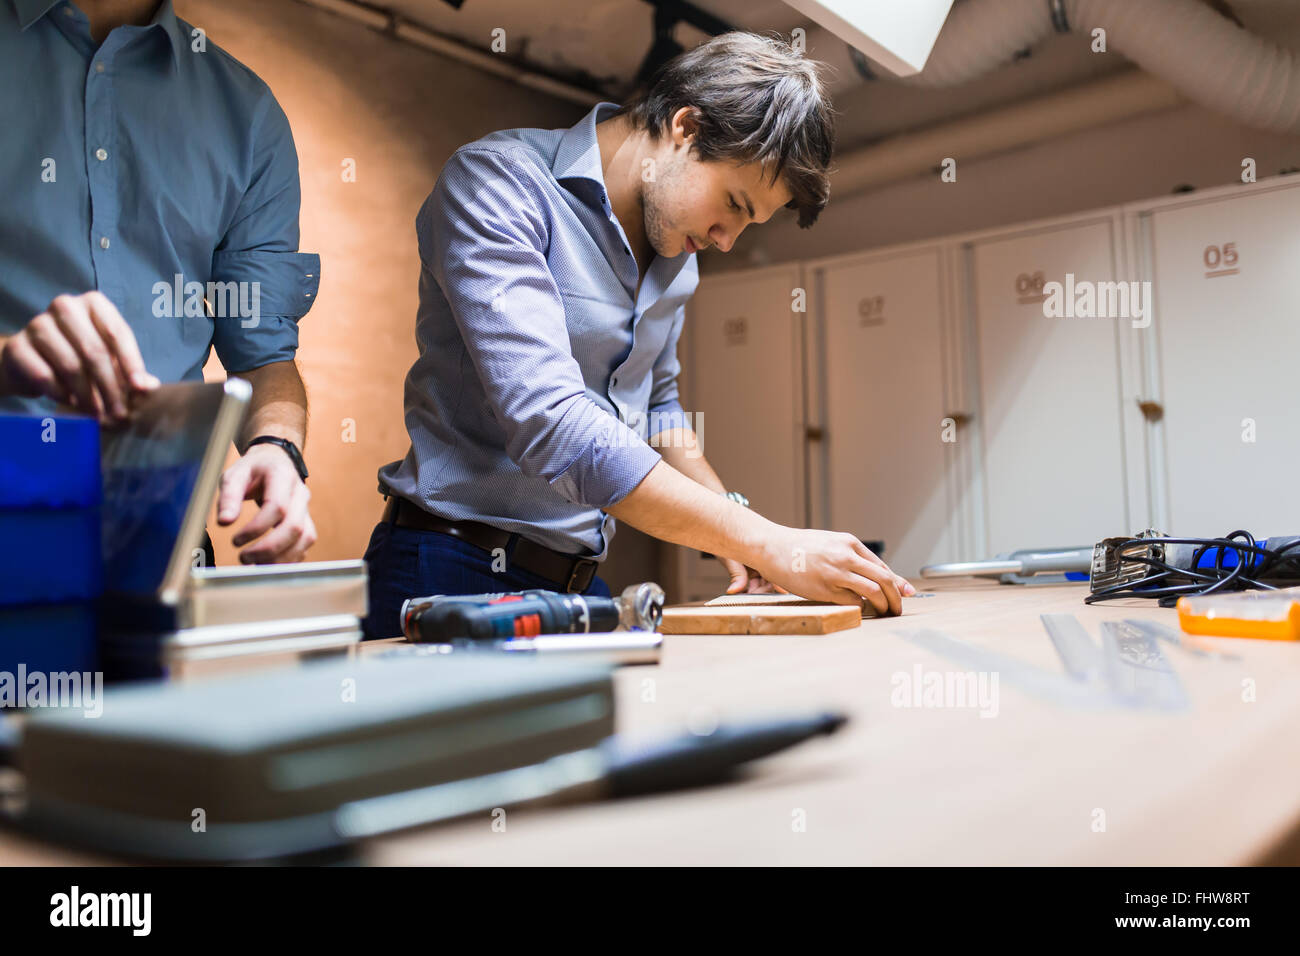 Handyman working with wood with precision tools at hand - Stock Image